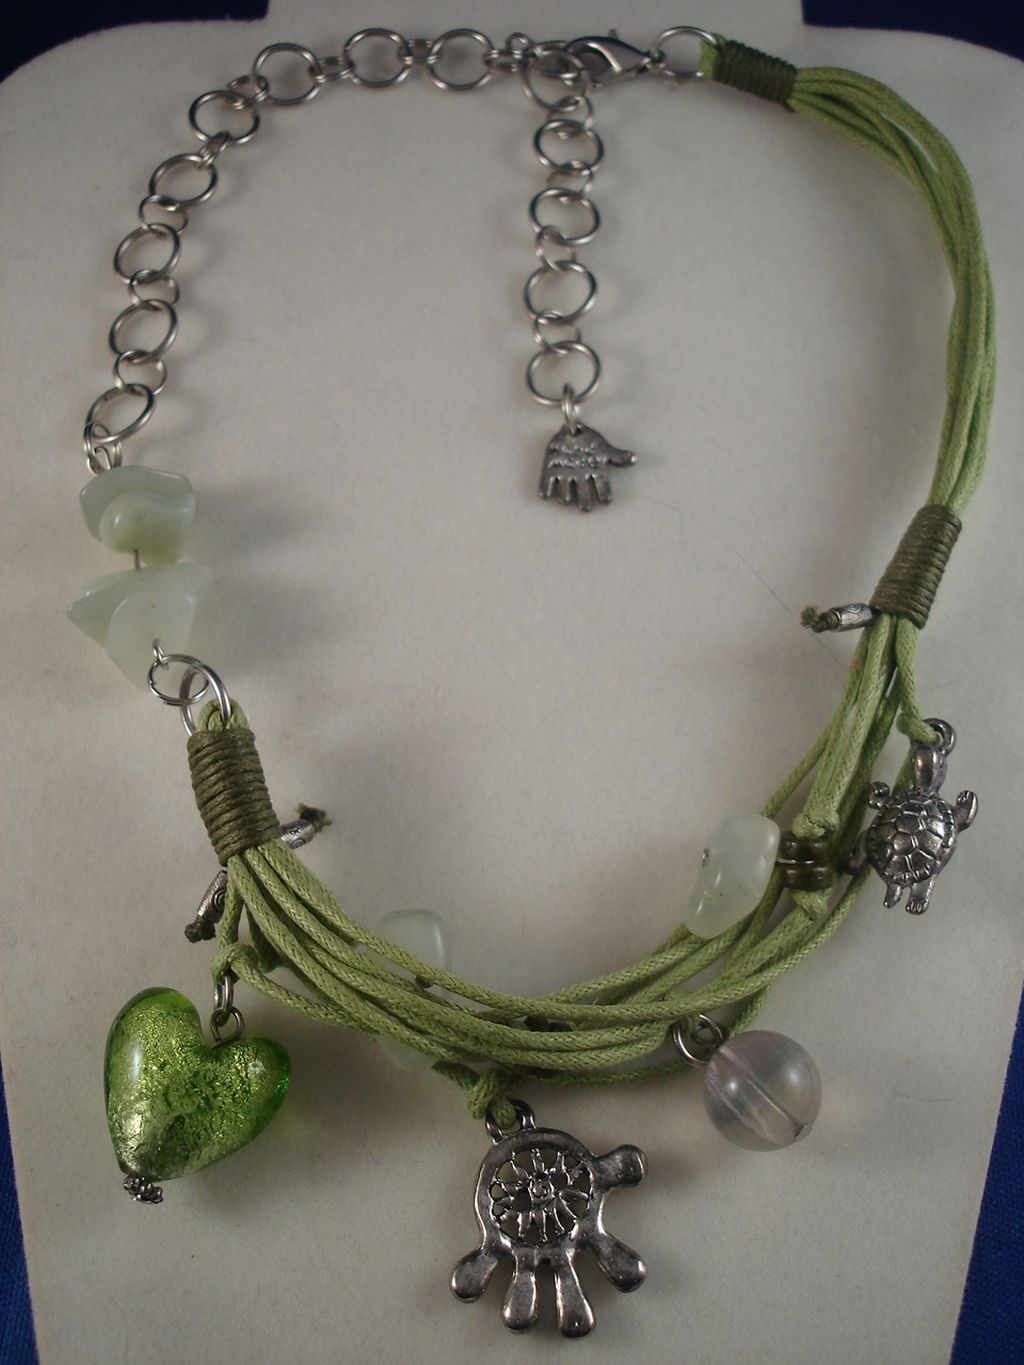 Green Cotton & Chain Necklace, Turtle, Bell, Palm Charms & Glass Heart Pendant, Anti-allergic Jewelry